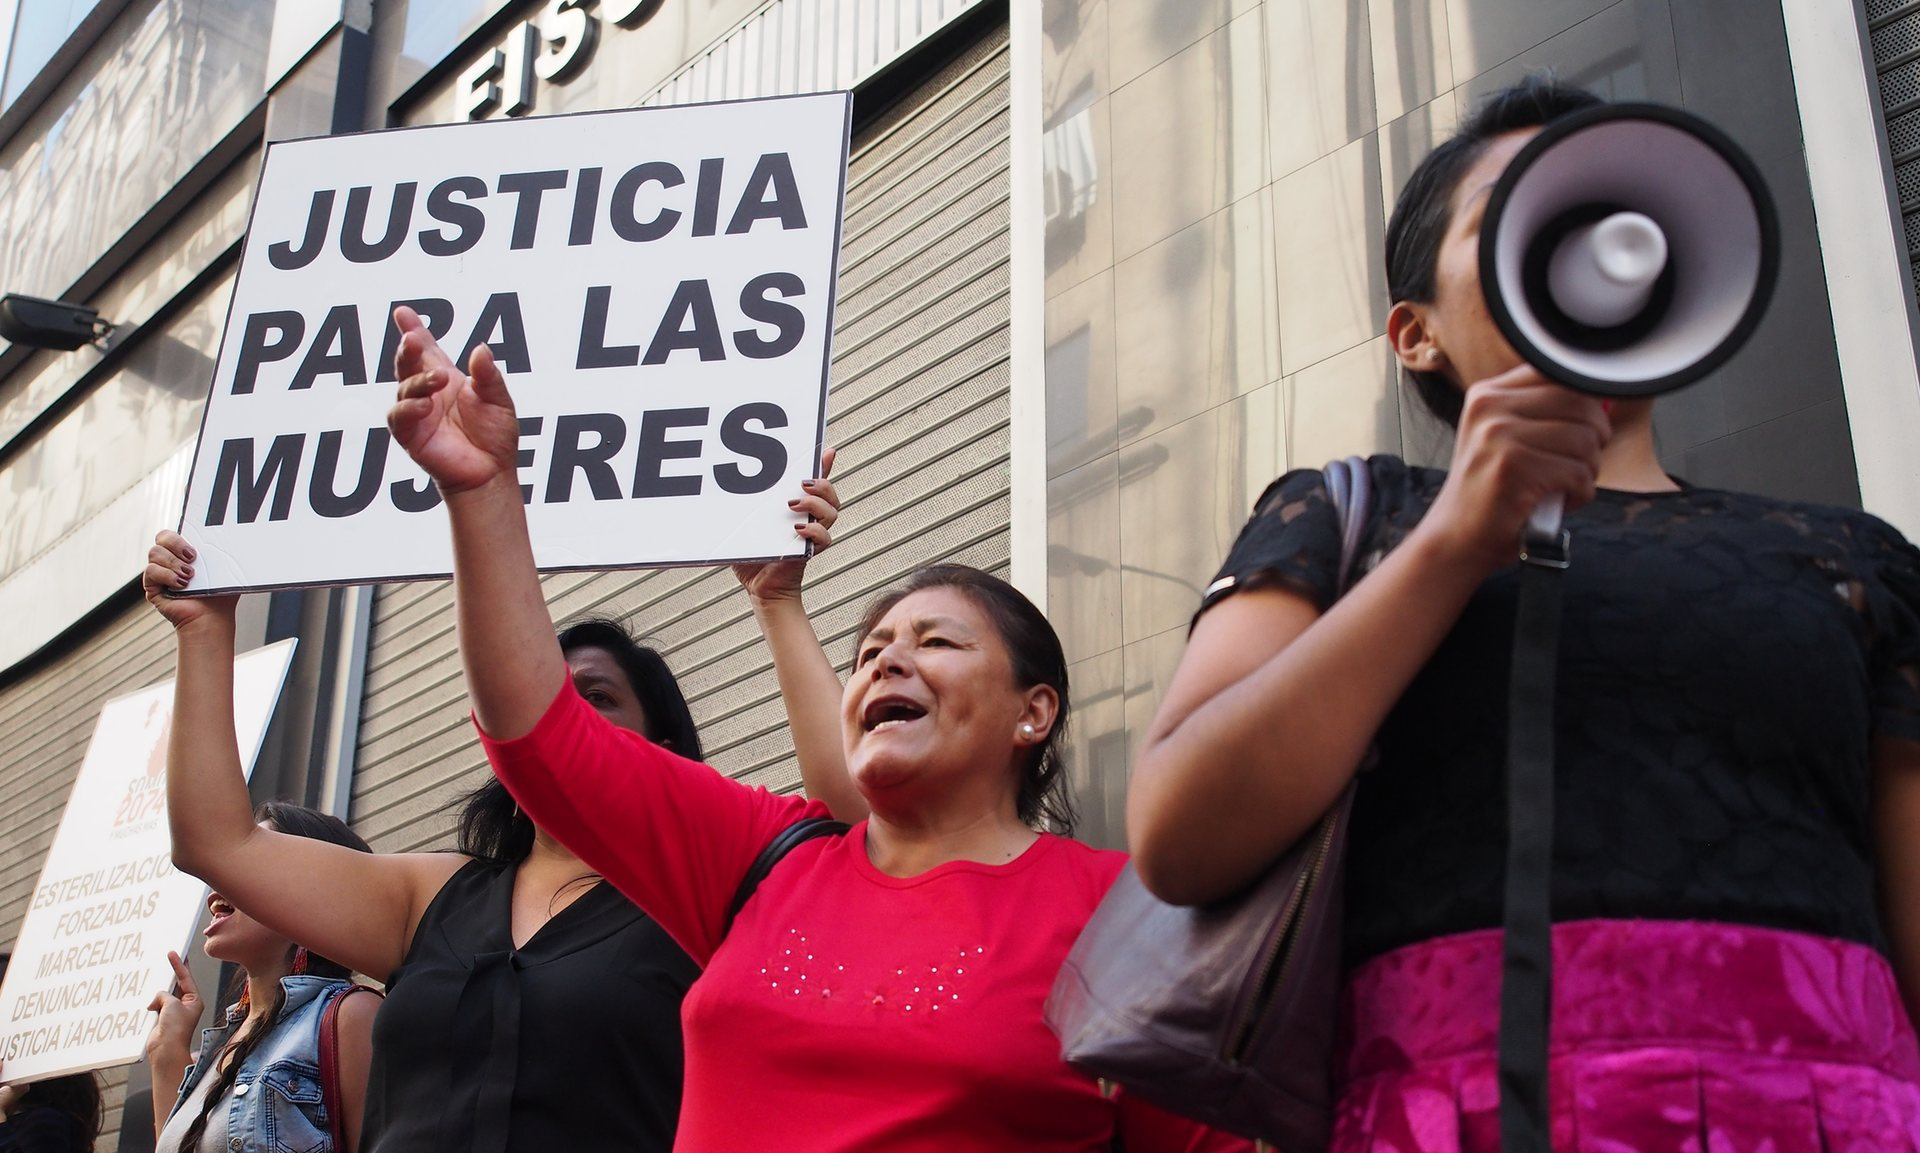 Women protest outside the prosecutor's office in Lima demanding justice for rural women who were forcibly sterilised, 10 May 2016. Photograph: Pacif/Rex/Shutterstock